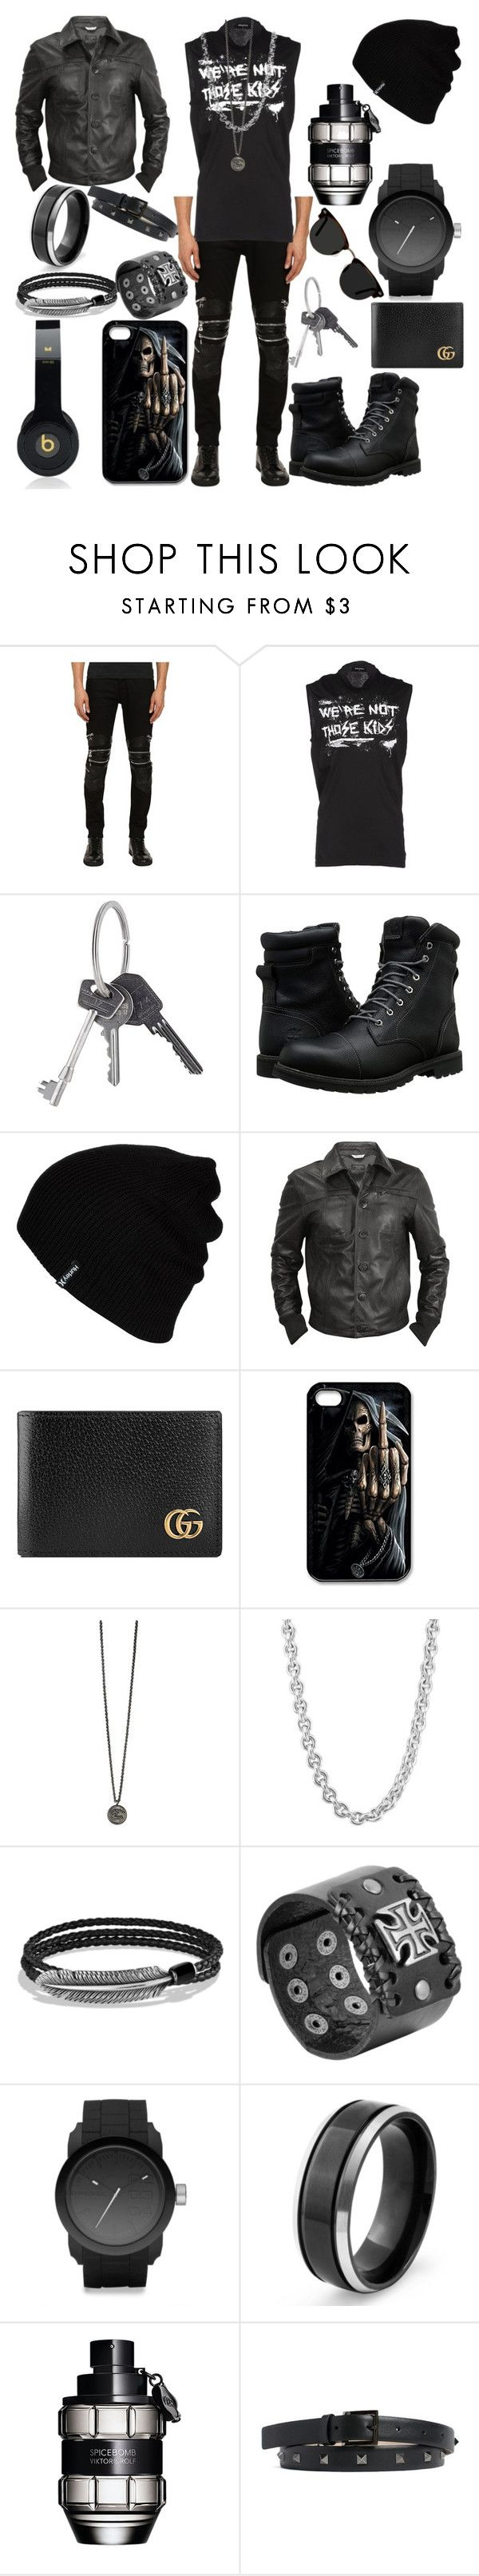 """Guys Night Out #2"" by vampirekitty34 ❤ liked on Polyvore featuring God's Masterful Children, Dsquared2, Givenchy, Timberland, Hurley, Forzieri, Gucci, Beats by Dr. Dre, John Hardy and David Yurman"